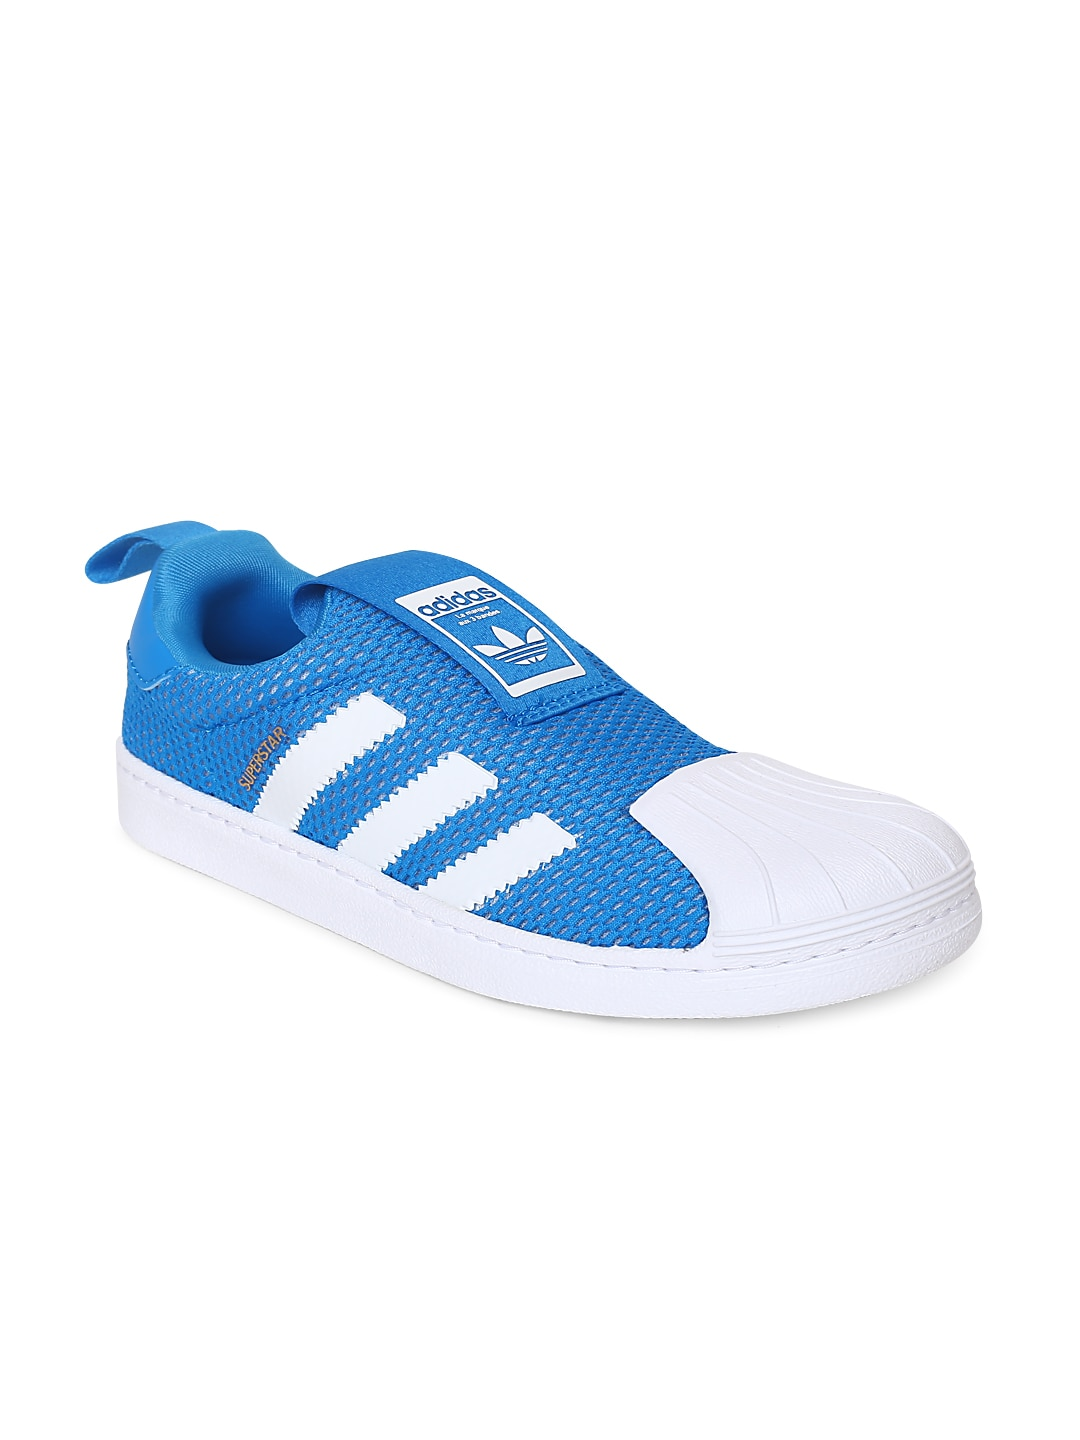 separation shoes 4fd9c 8fee6 Adidas Girls Casual Shoes - Buy Adidas Girls Casual Shoes online in India